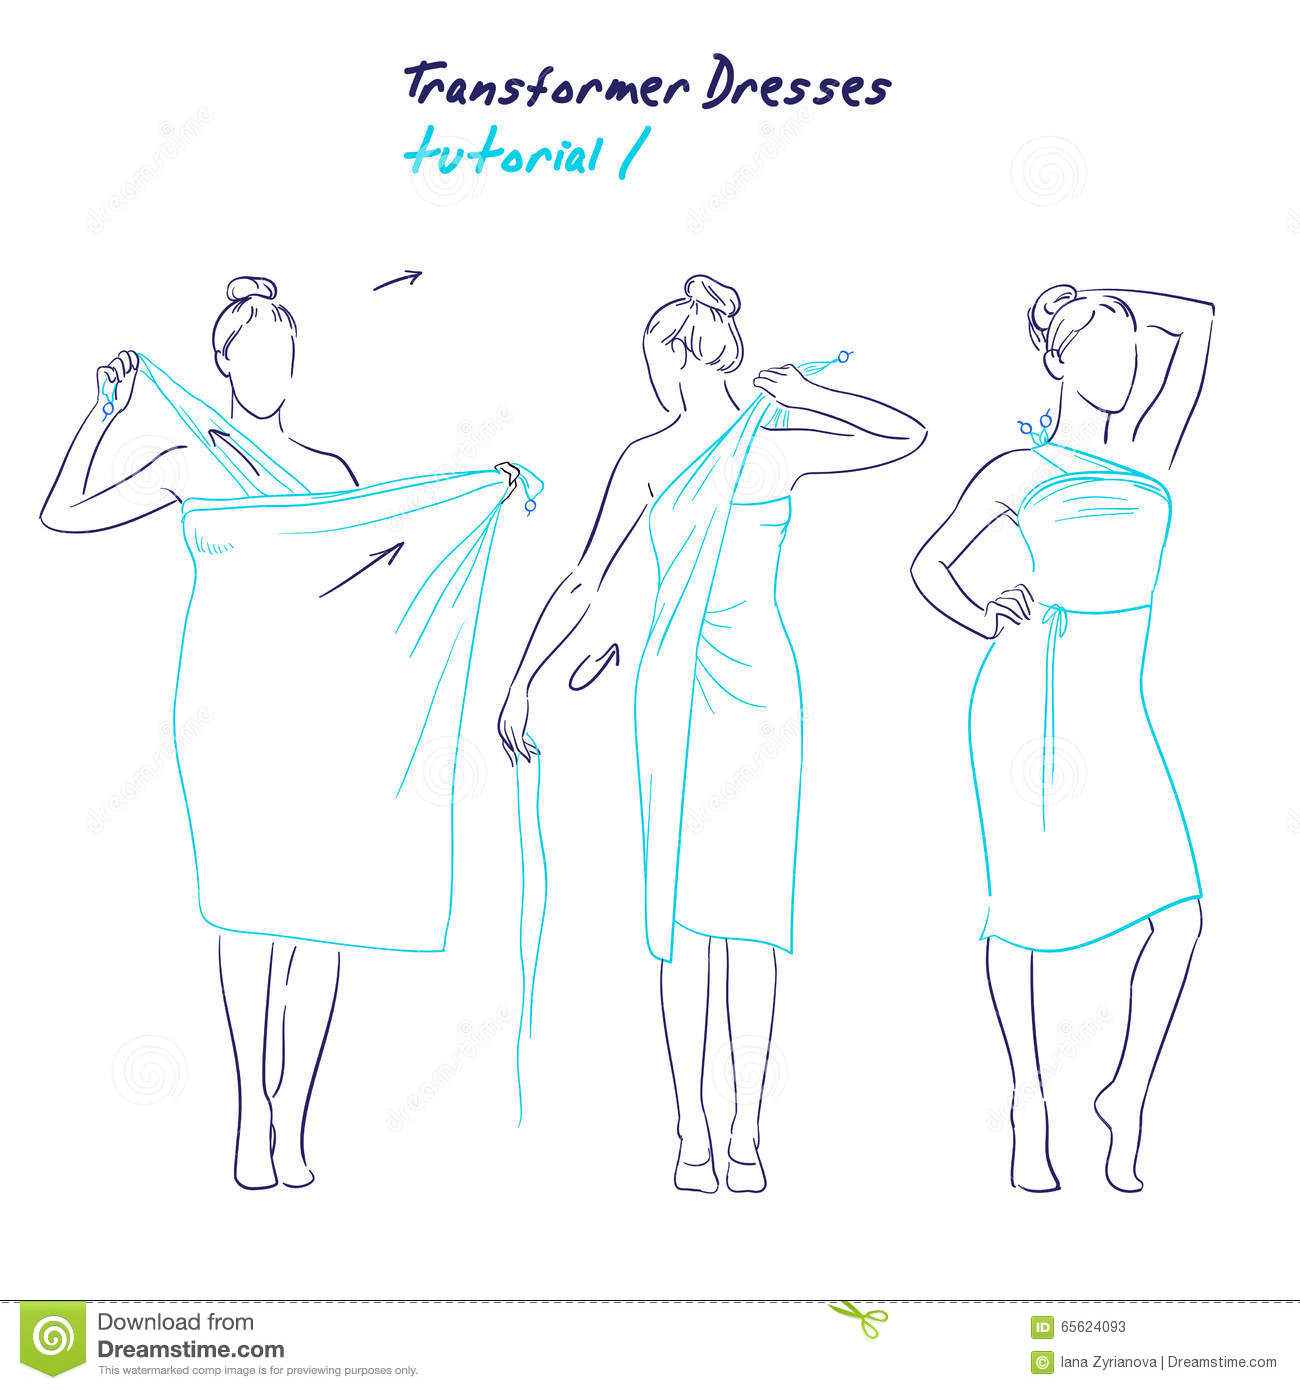 Drawn women simple Drawn drawn illustration animation women